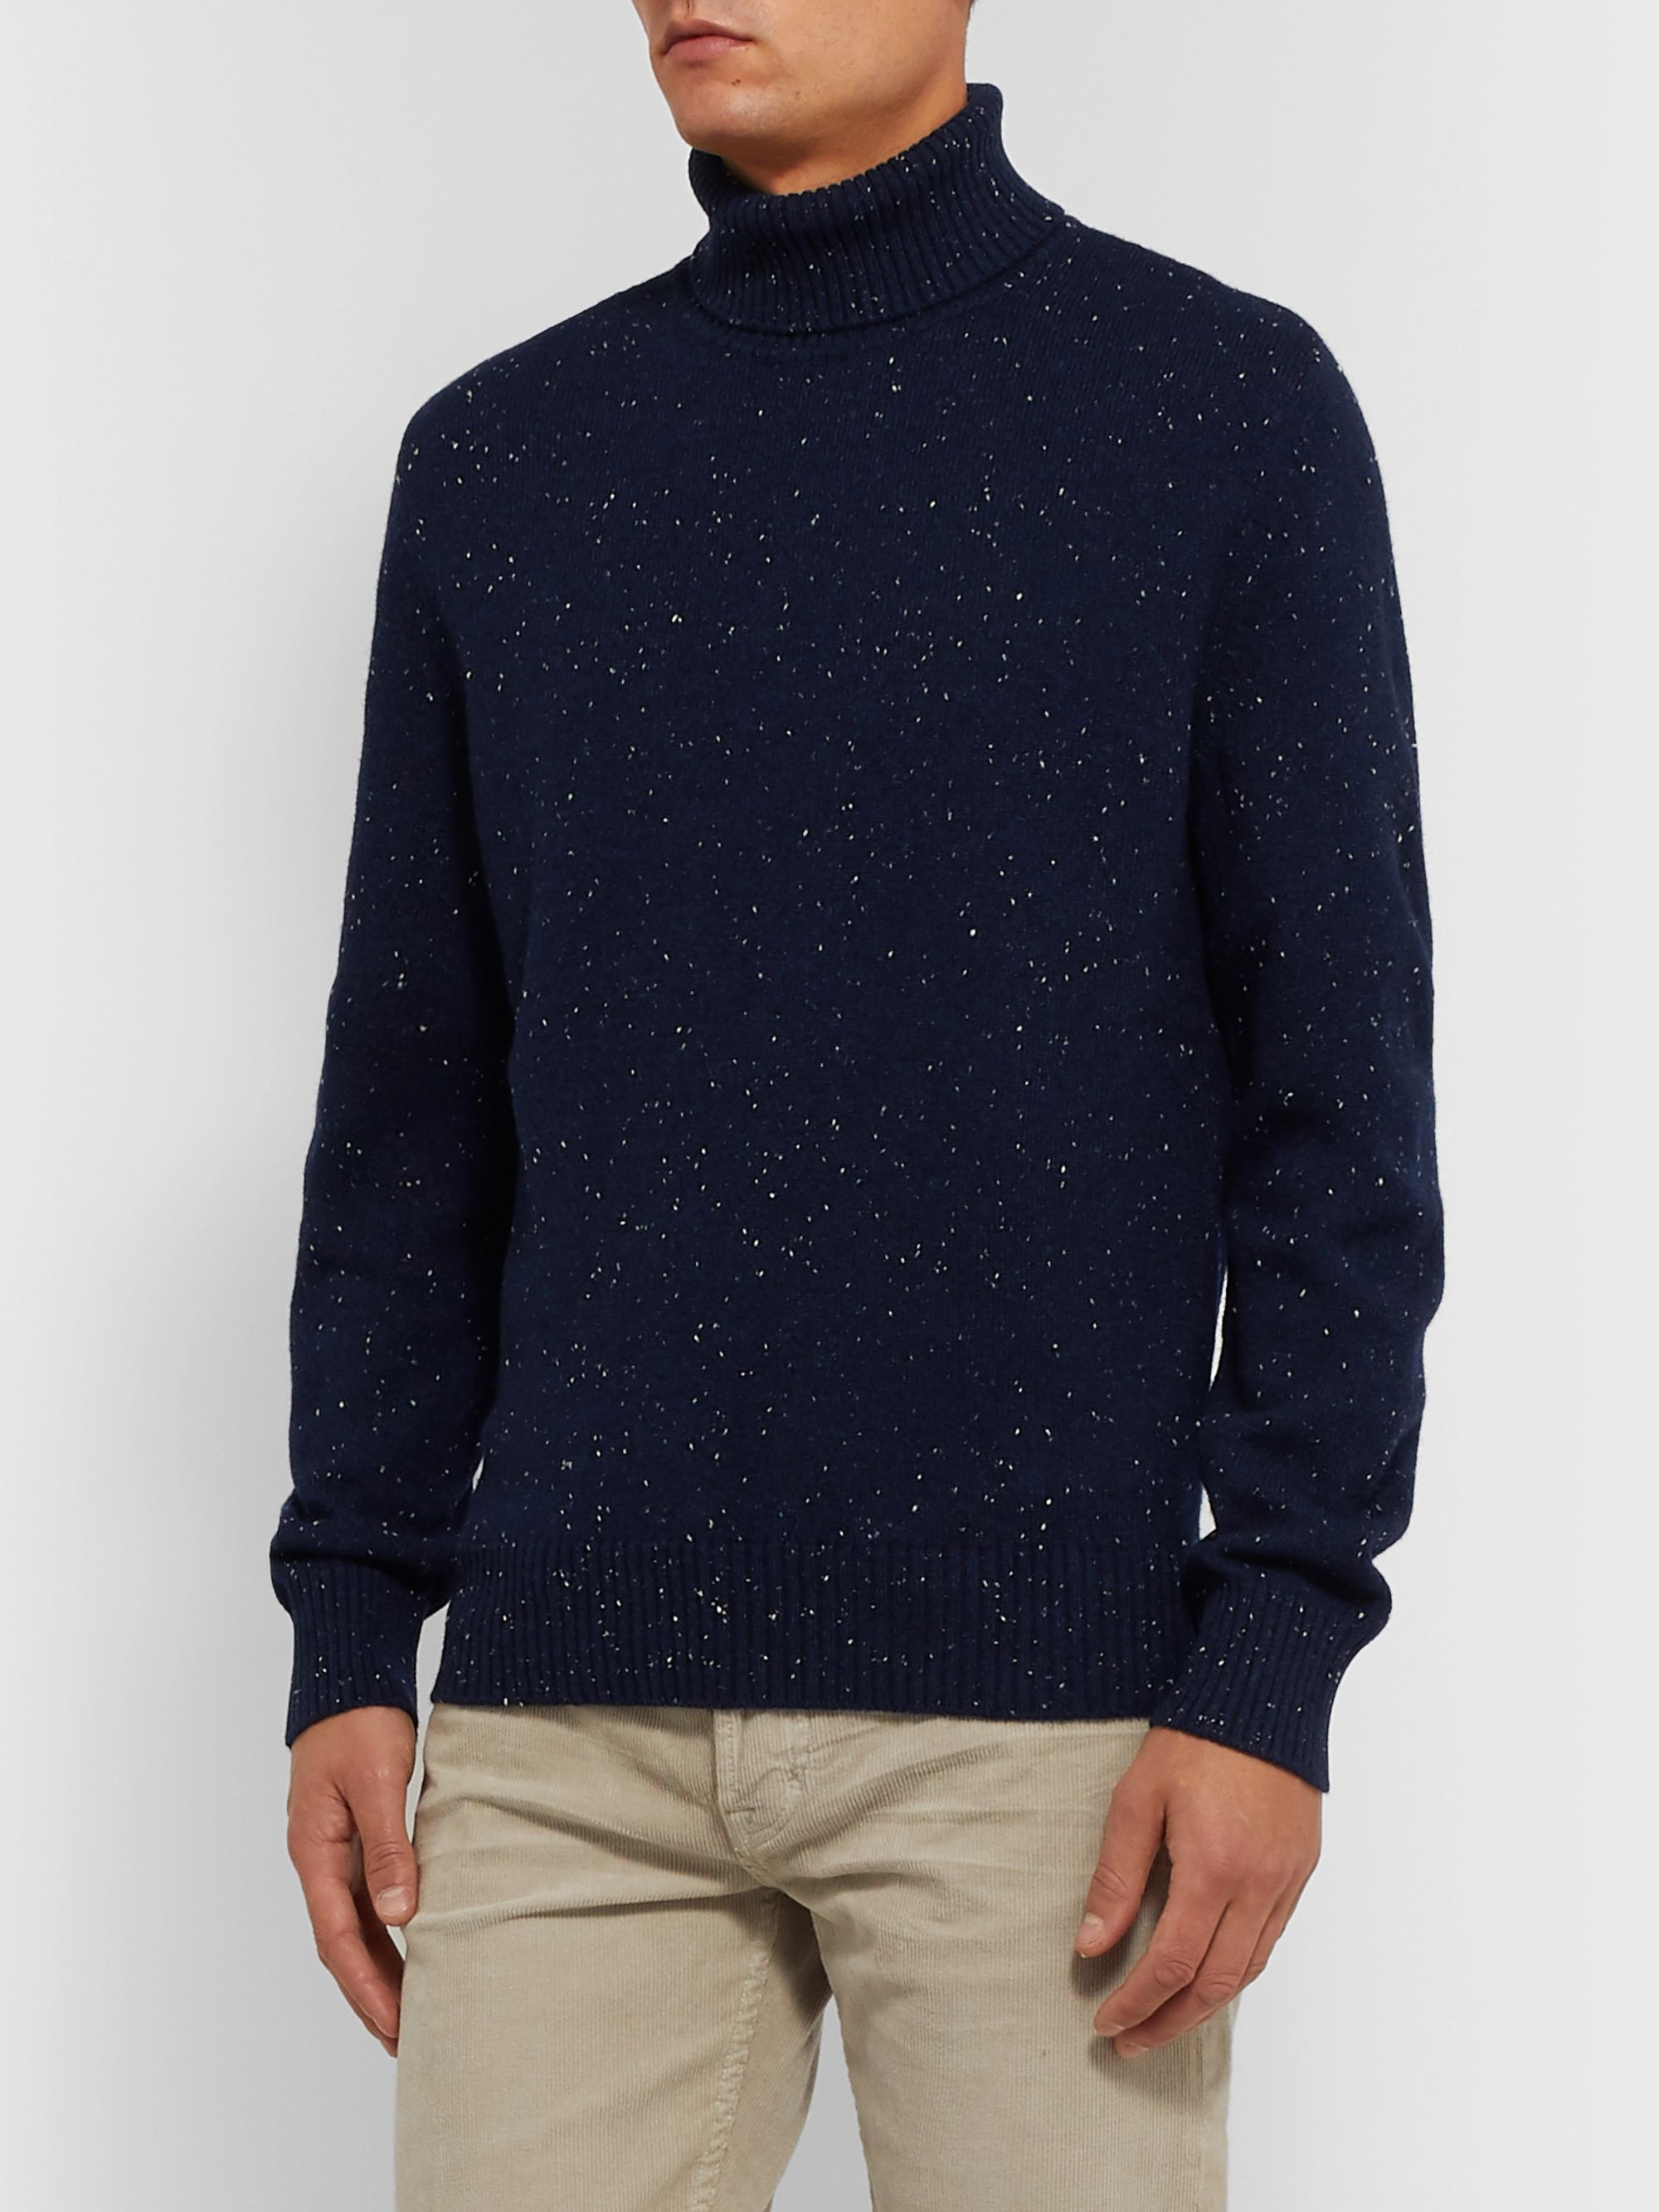 Ermenegildo Zegna Wool, Silk and Cashmere-Blend Rollneck Sweater